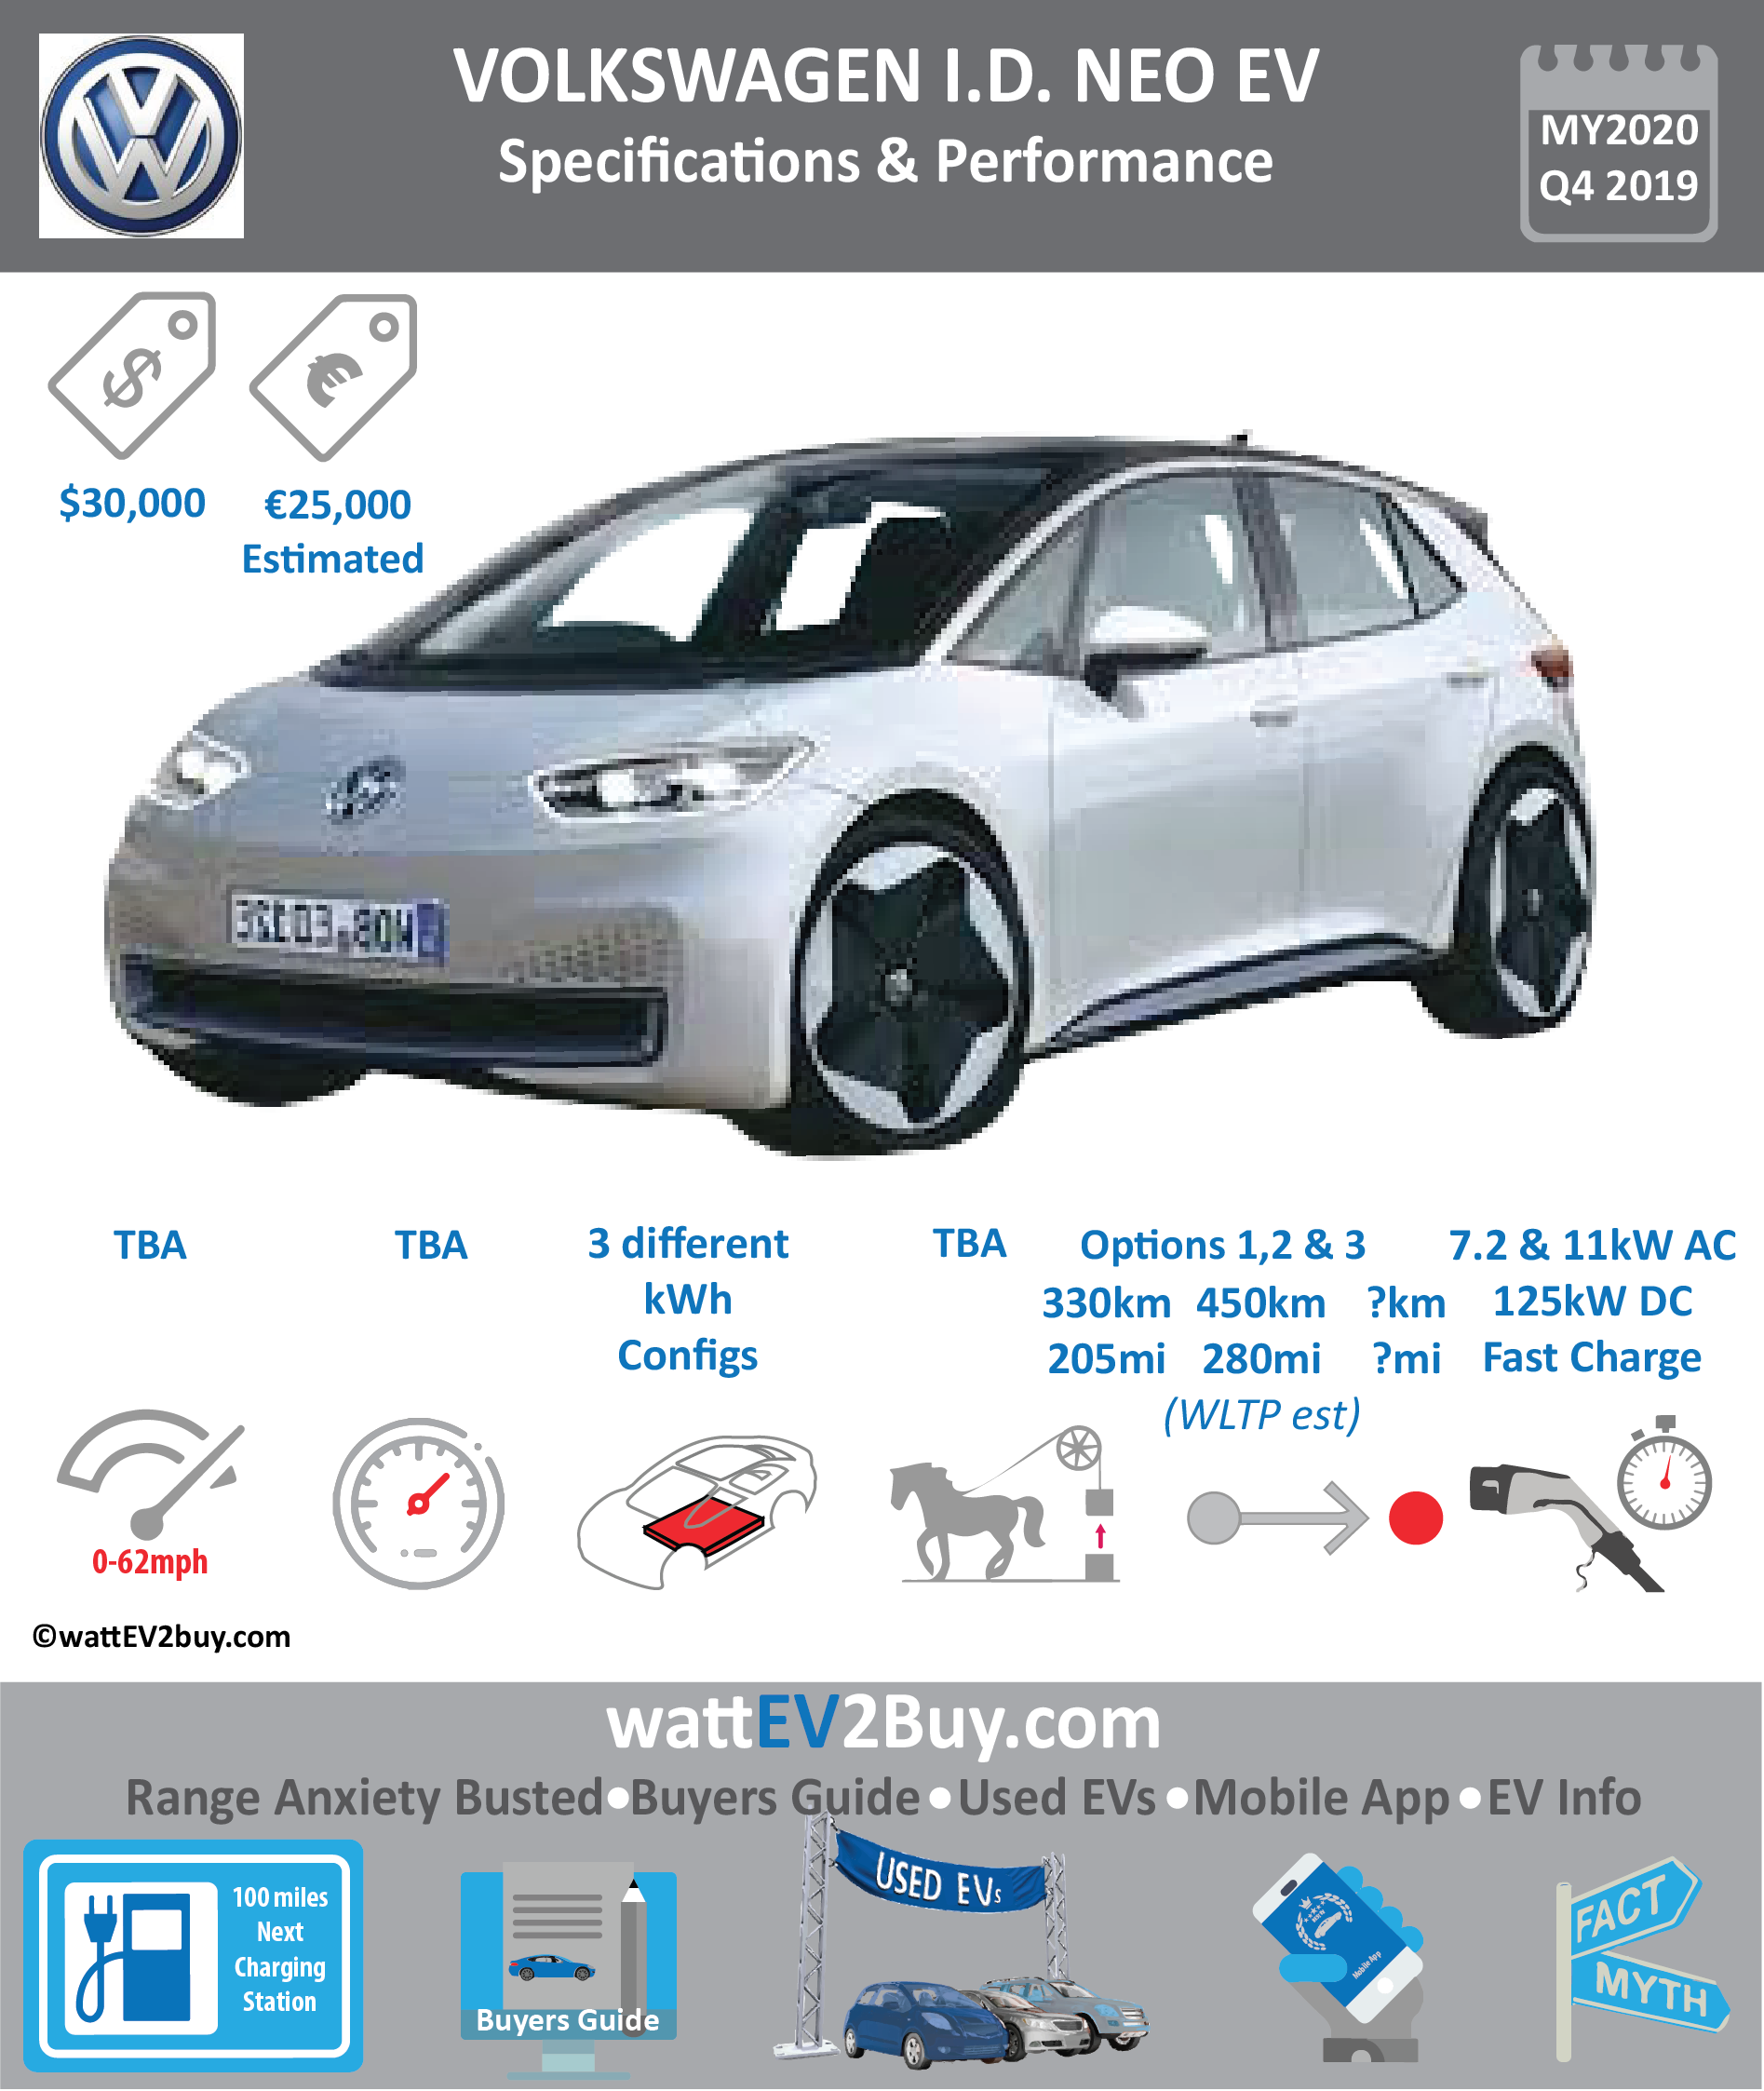 VW ID NEO EV Specs wattev2Buy.com 2020 Battery Chemistry Battery Capacity kWh Battery Nominal rating kWh Voltage V Amps Ah Cells Modules Efficiency Weight (kg) Cell Type SOC Cooling Cycles Battery Type Depth of Discharge (DOD) Energy Density Wh/kg Battery Manufacturer Battery Warranty - years Battery Warranty - km Battery Warranty - miles Battery Electric Range - at constant 38mph Battery Electric Range - at constant 60km/h Battery Electric Range - at constant 25mph Battery Electric Range - at constant 40km/h Battery Electric Range - JC08 Mi Battery Electric Range - JC08 km Battery Electric Range - WLTP Mi 250 Battery Electric Range - WLTP km 400 Battery Electric Range - NEDC Mi 250 Battery Electric Range - NEDC km 400 Battery Electric Range - CCM Mi Battery Electric Range - CCM km Battery Electric Range - EPA Mi Battery Electric Range - EPA km Electric Top Speed - mph Electric Top Speed - km/h Acceleration 0 - 100km/h sec Acceleration 0 - 50km/h sec Acceleration 0 - 125km/h sec Acceleration 0 - 125mph sec Acceleration 0 - 188mph sec Acceleration 0 - 62mph sec Acceleration 0 - 60mph sec Acceleration 0 - 37.2mph sec Braking 100-0km/h (m) Wireless Charging Direct Current Fast Charge kW Charger Efficiency Onboard Charger kW Onboard Charger Optional kW Charging Cord - amps Charging Cord - volts LV 1 Charge kW LV 1 Charge Time (Hours) LV 2 Charge kW LV 2 Charge Time (Hours) LV 3 CCS/Combo kW LV 3 Charge Time (min to 70%) LV 3 Charge Time (min to 80%) LV 3 Charge Time (mi) LV 3 Charge Time (km) Battery Swap (min) Supercharger Charging System kW Charger Output Charge Type Charge Connector Braking Power Outlet kW Power Outlet Amps MPGe Combined - miles MPGe Combined - km MPGe City - miles MPGe City - km MPGe Highway - miles MPGe Highway - km Max Power - hp (Electric Max) Max Power - kW (Electric Max) Max Torque - lb.ft (Electric Max) Max Torque - N.m (Electric Max) Drivetrain Generator Motor Type Electric Motor Manufacturer Electric Motor Output kW Electric Motor Output hp 